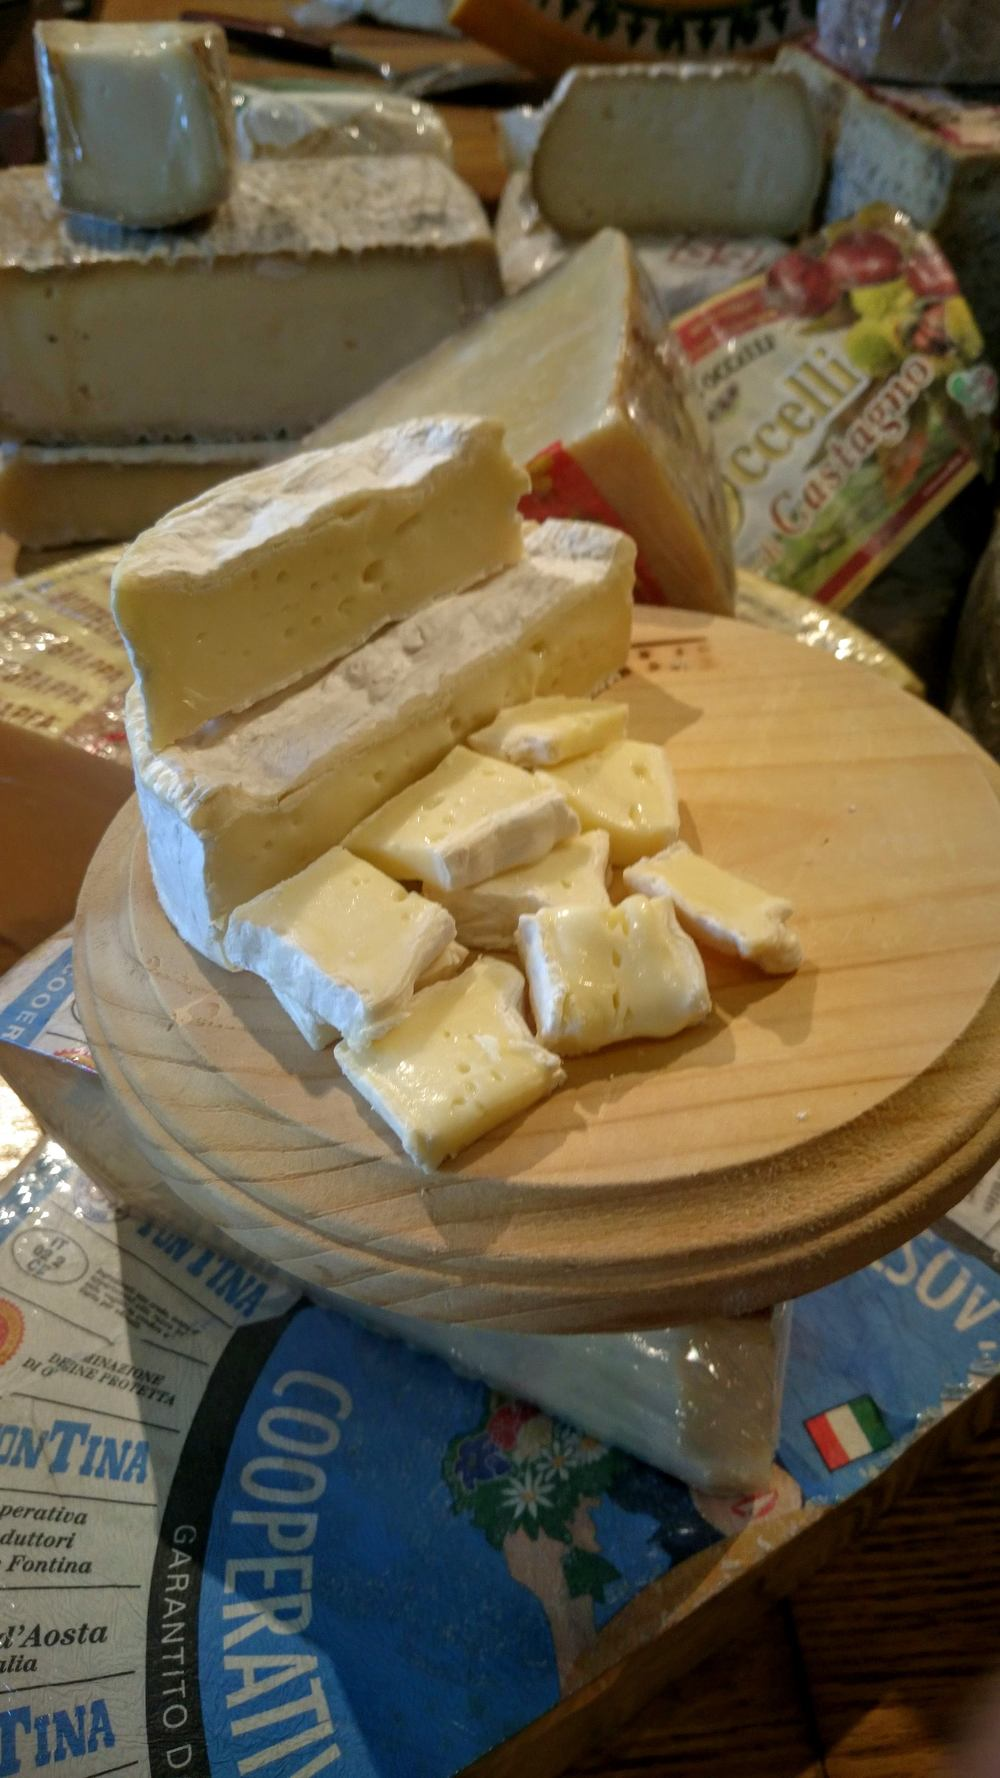 camembert-cheese-store-beverly-hills.jpg